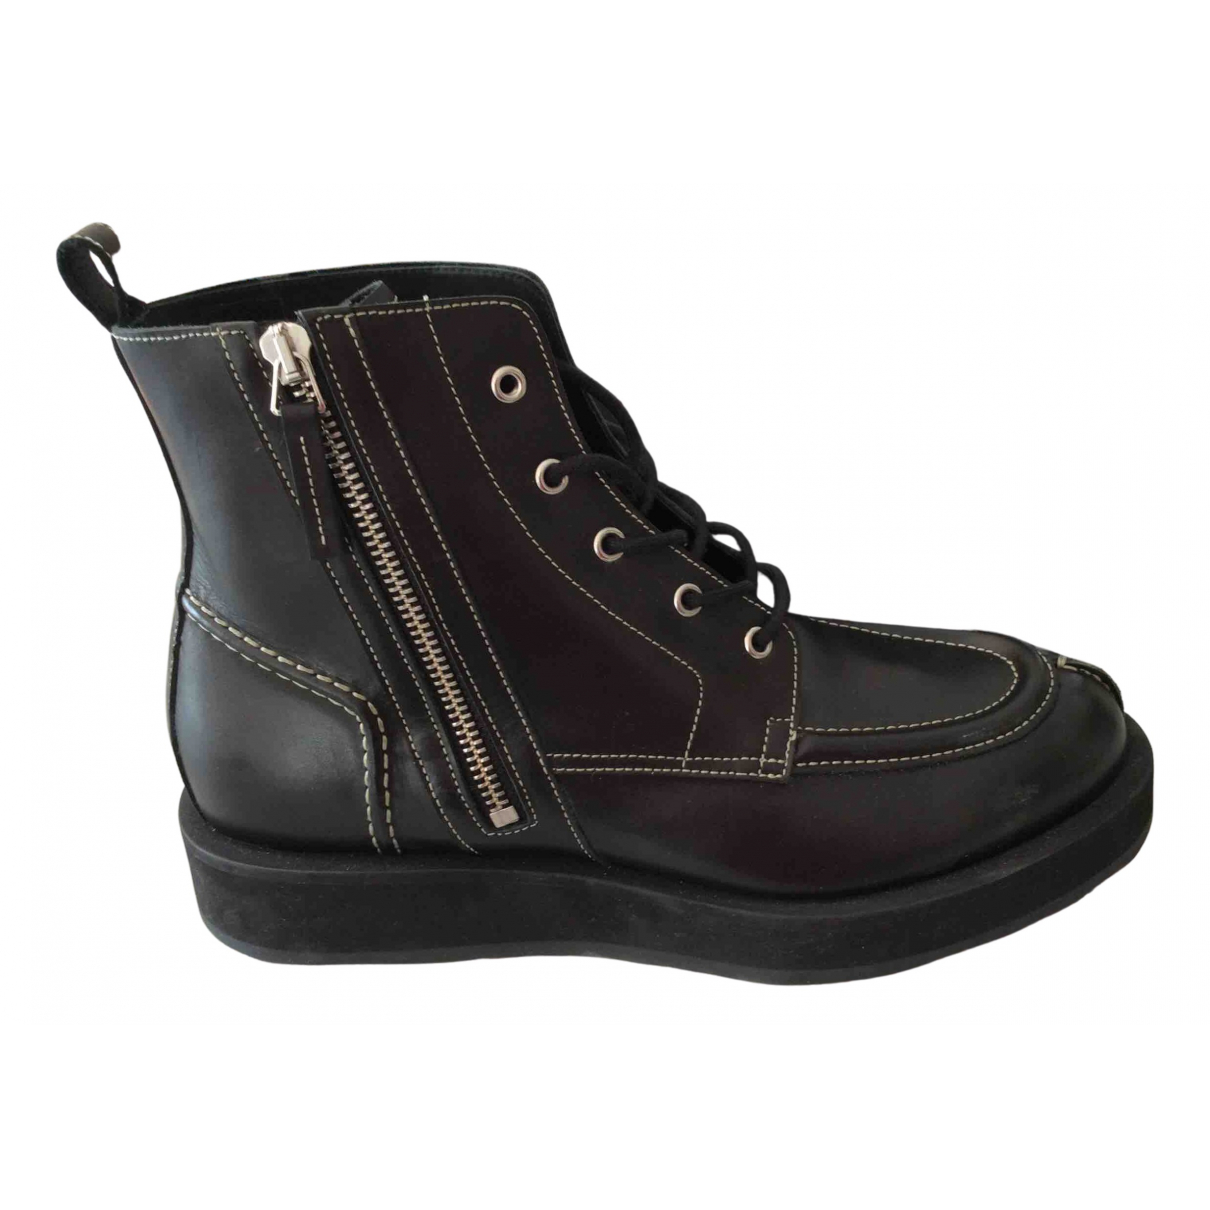 Pierre Hardy \N Black Leather Boots for Men 40 EU